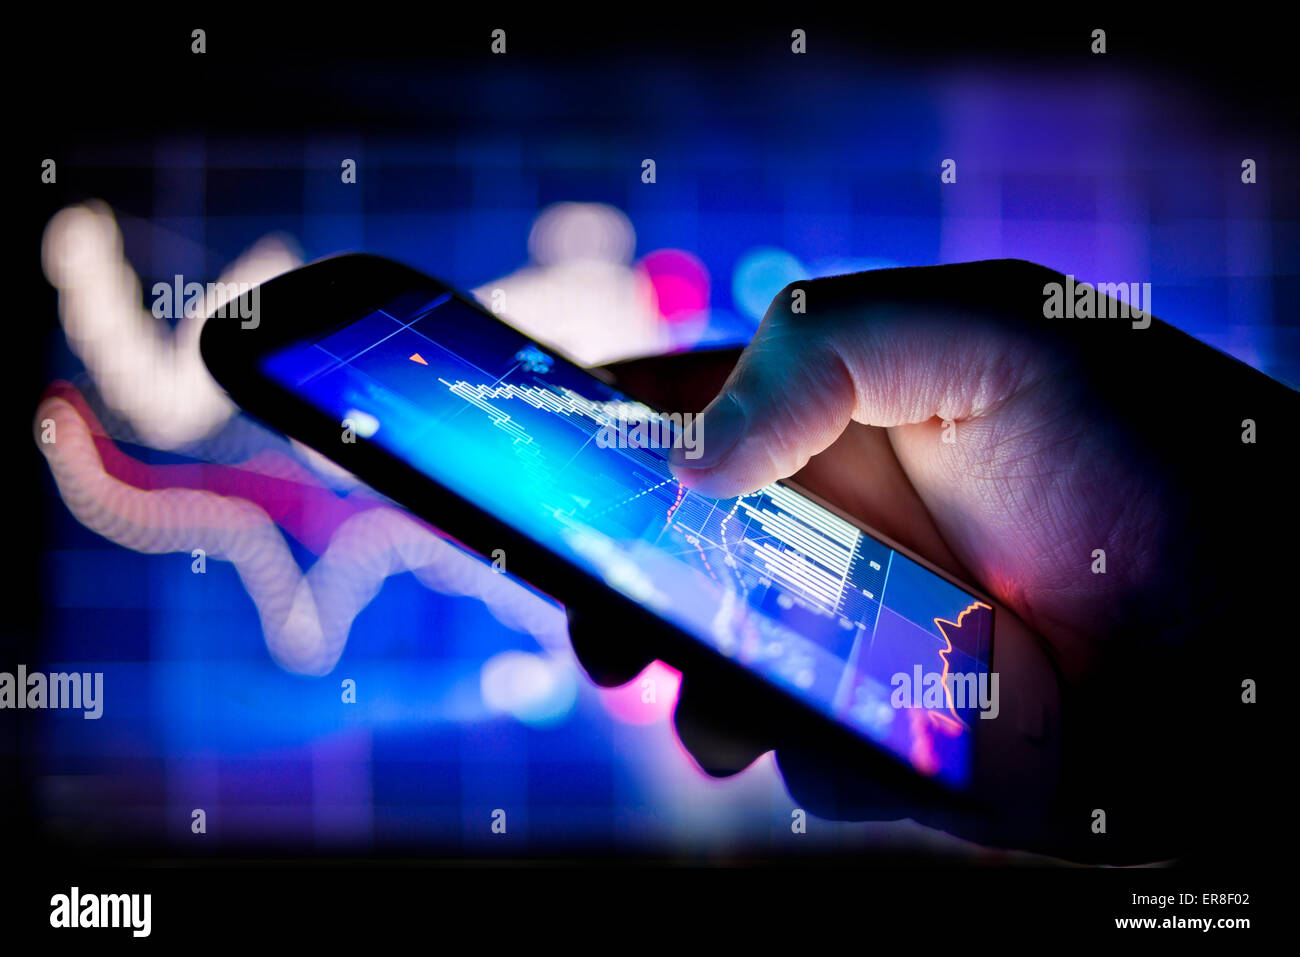 A person using a mobile phone to track real time stocks and shares data - Stock Image